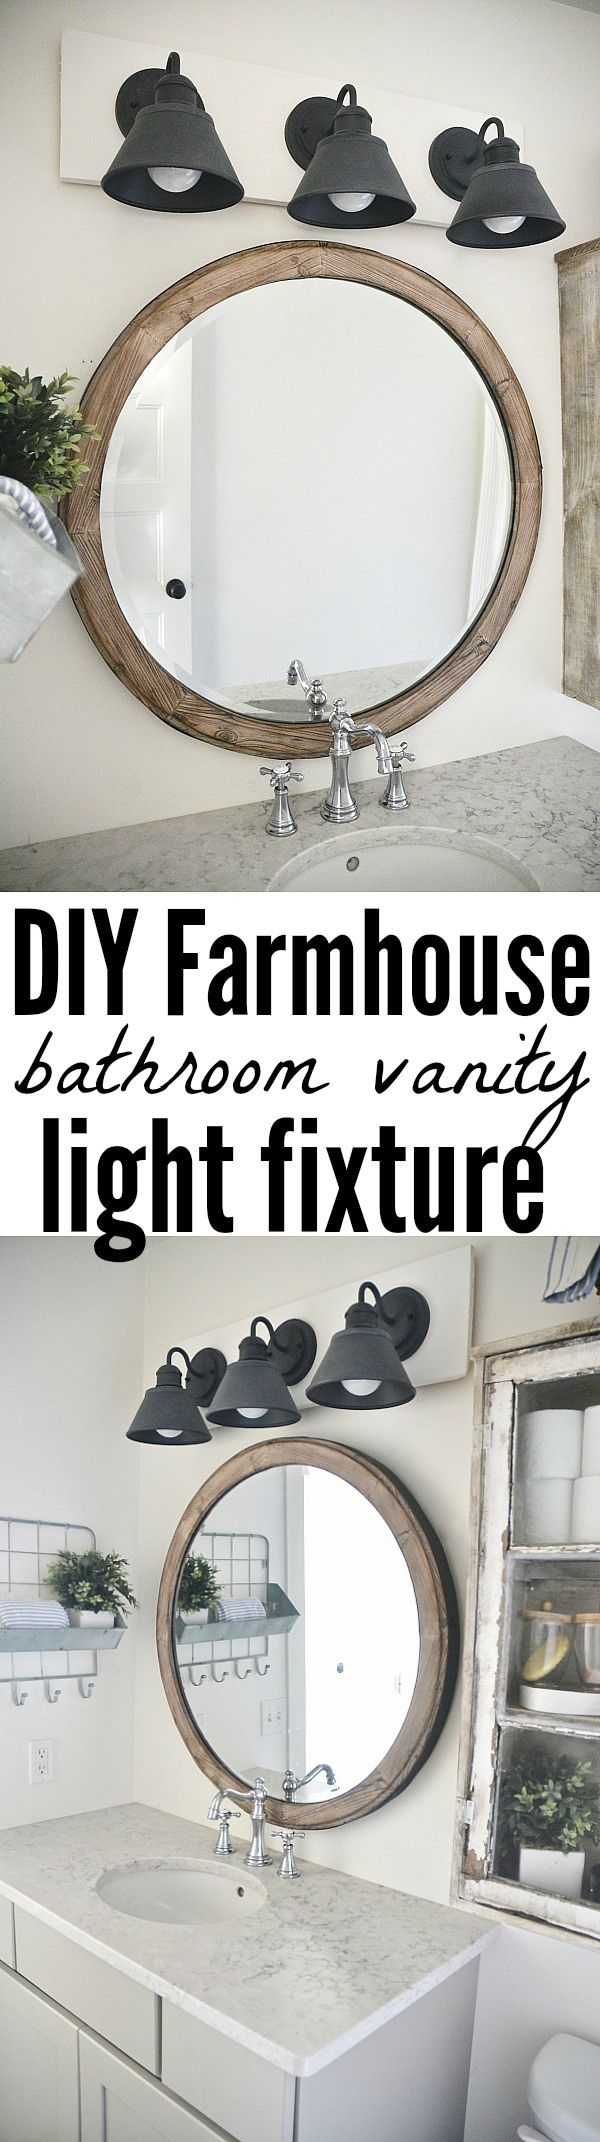 Bathroom Vanity Lights Ikea best 25+ vanity lights ikea ideas on pinterest | vanity set ikea